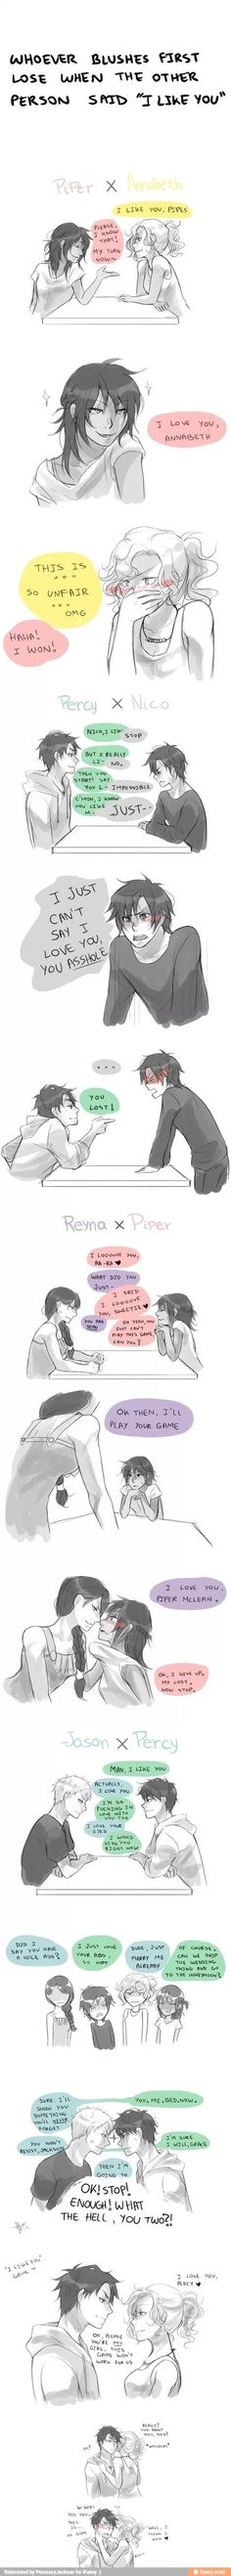 OH MY GODS THE REYNA AND PIPER ONE